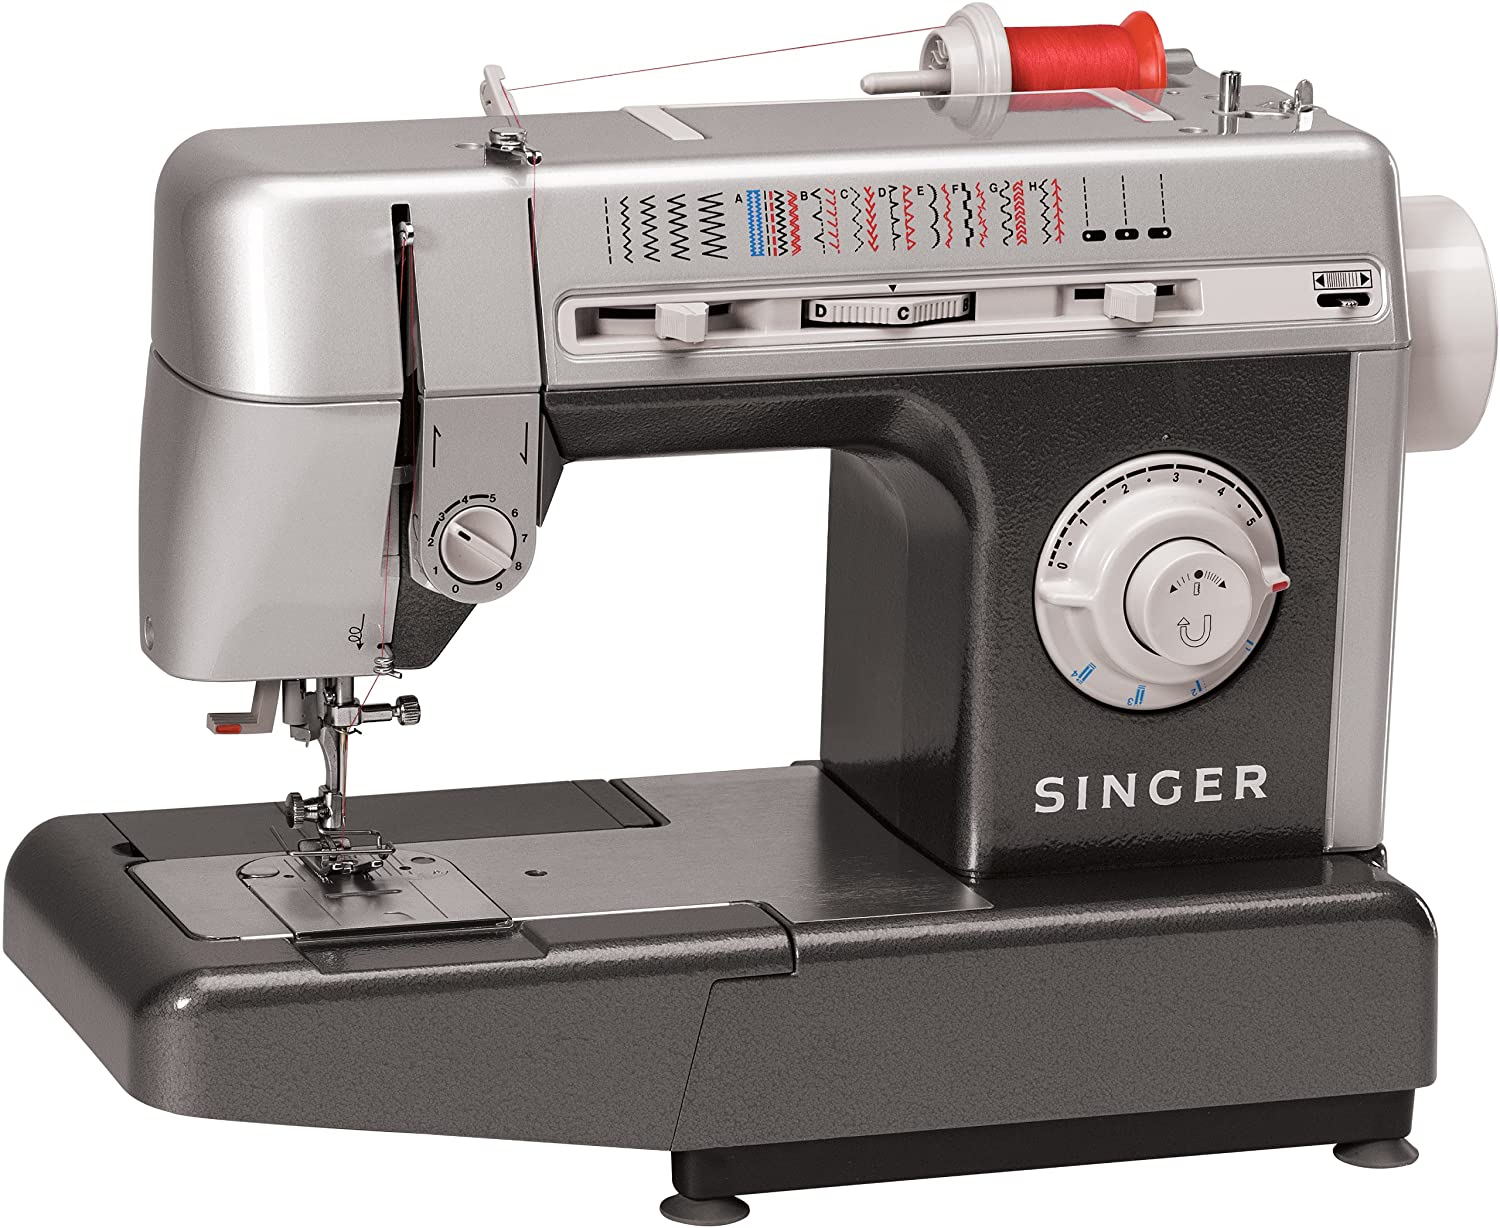 Best Sewing Machine for Leather and Denim